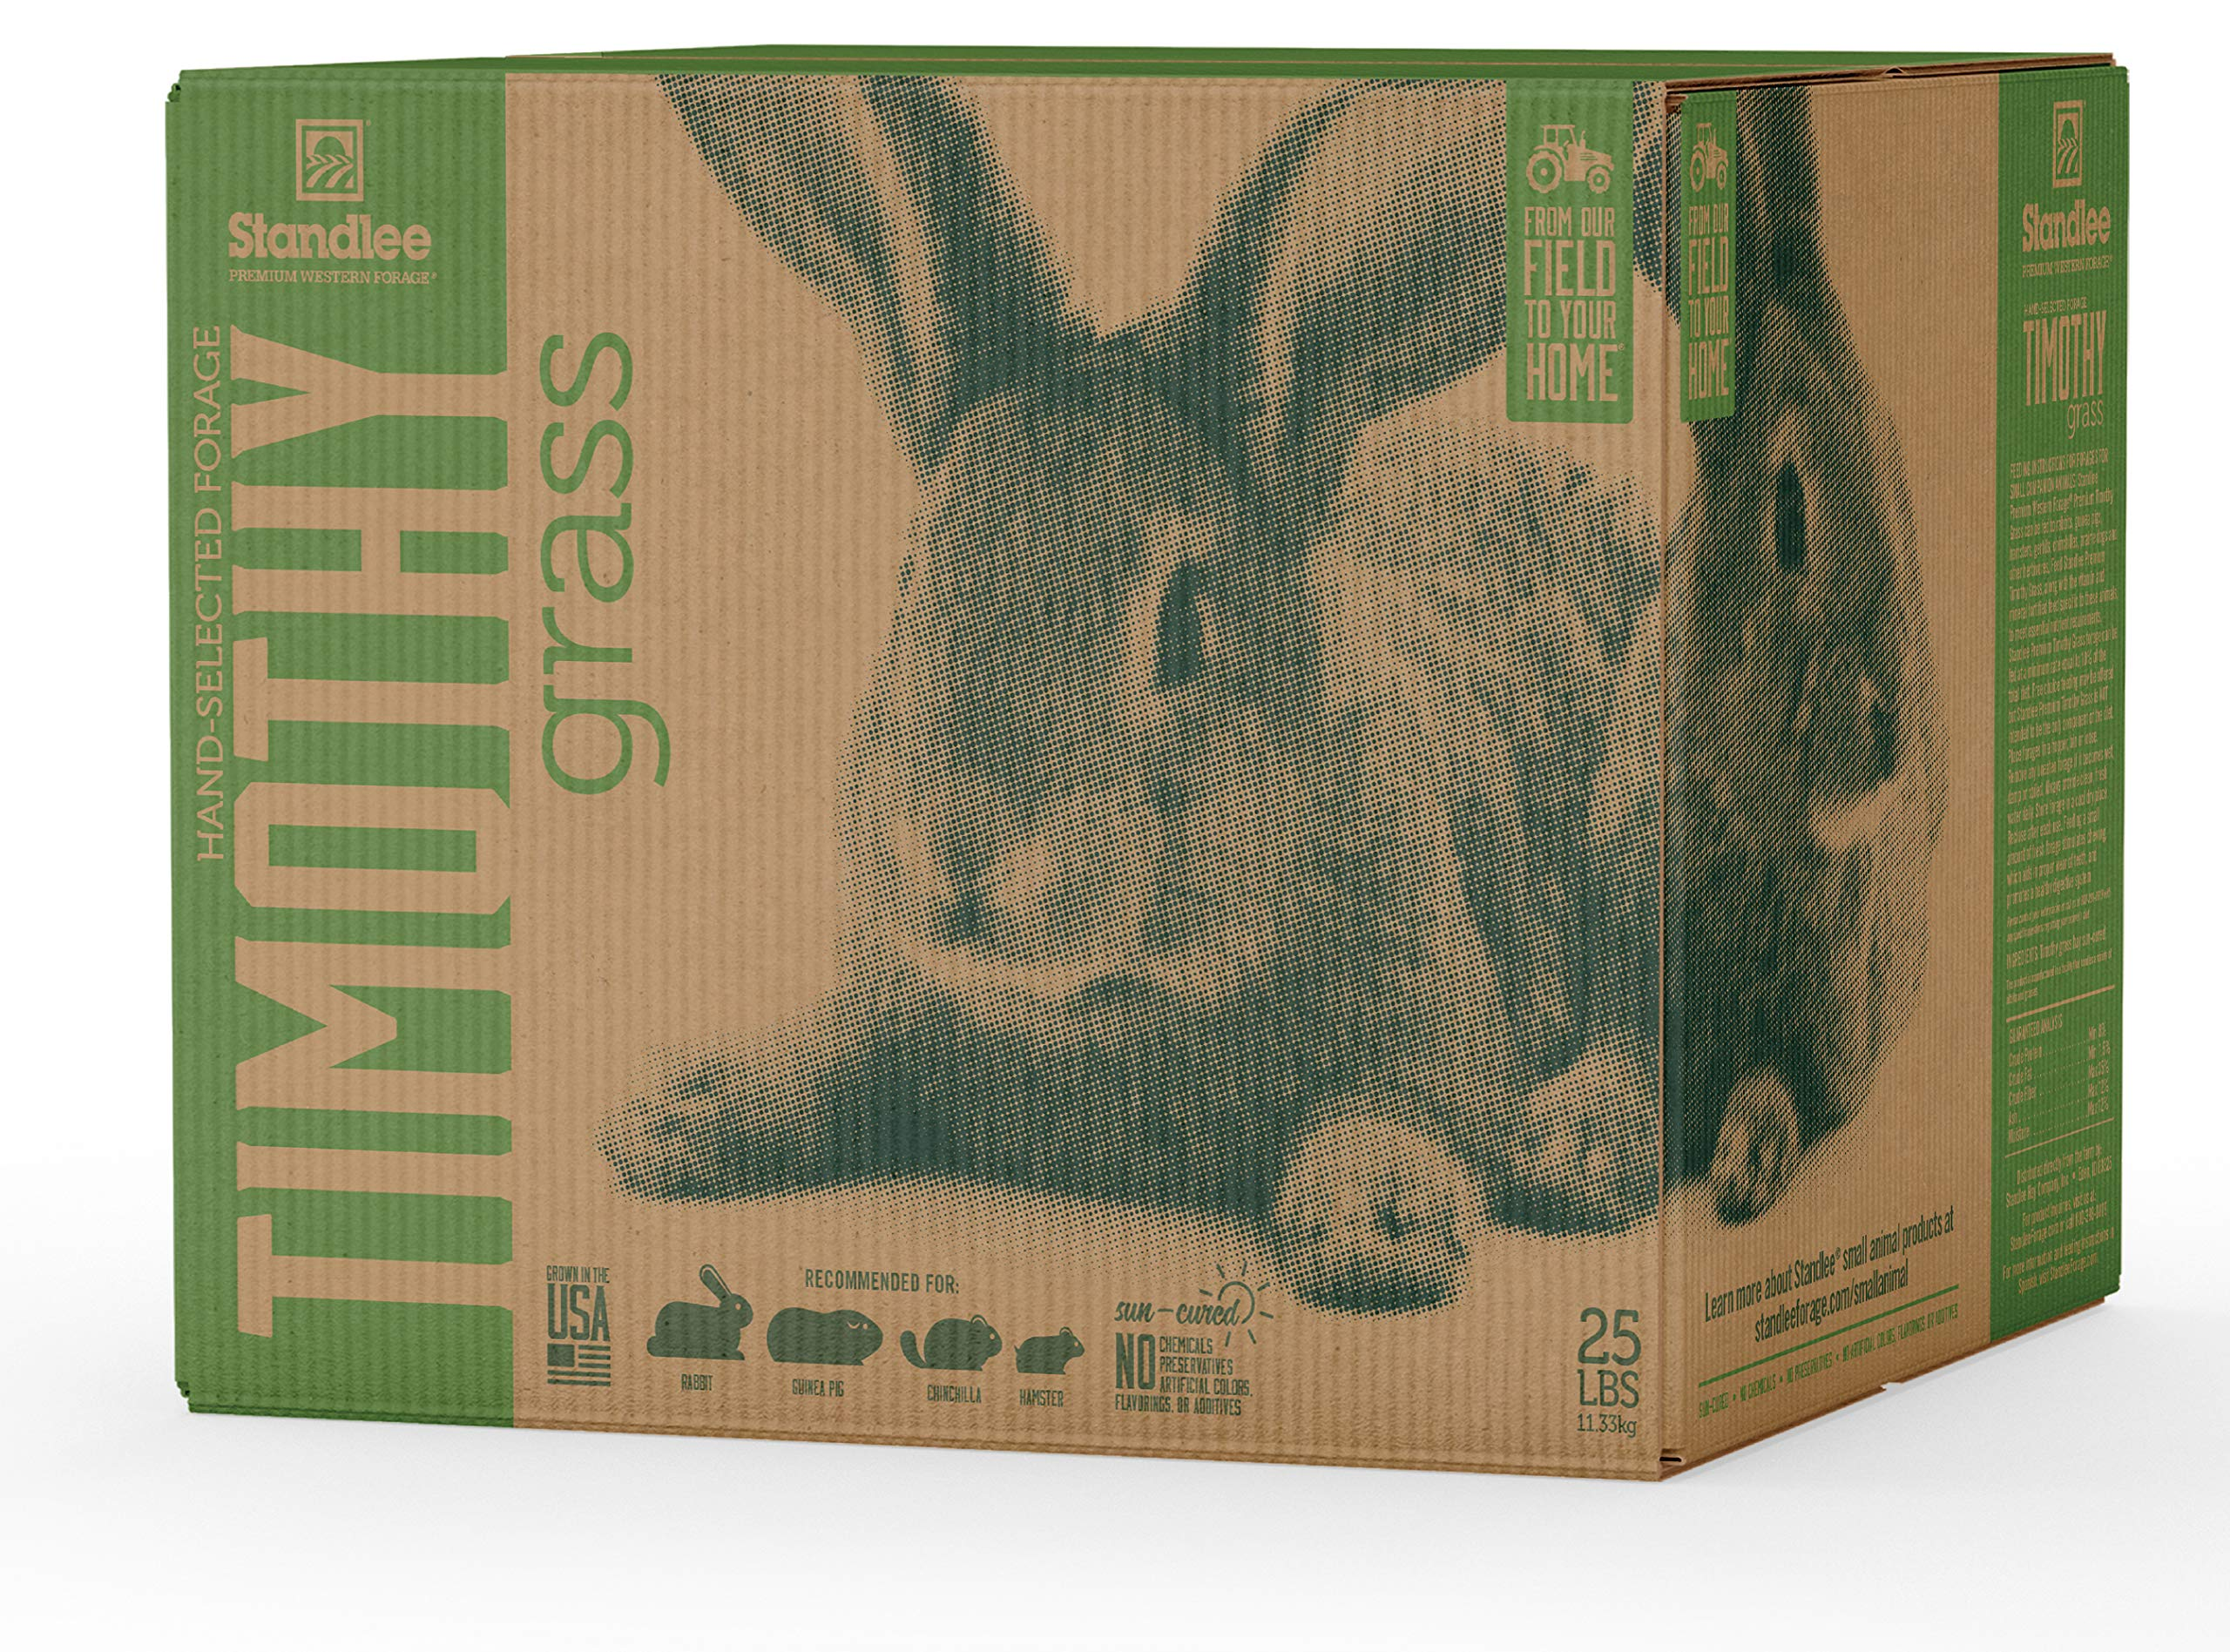 Standlee Hay Company Premium Timothy Grass Hand-Selected Forage, 25 lb Box by Standlee Hay Company